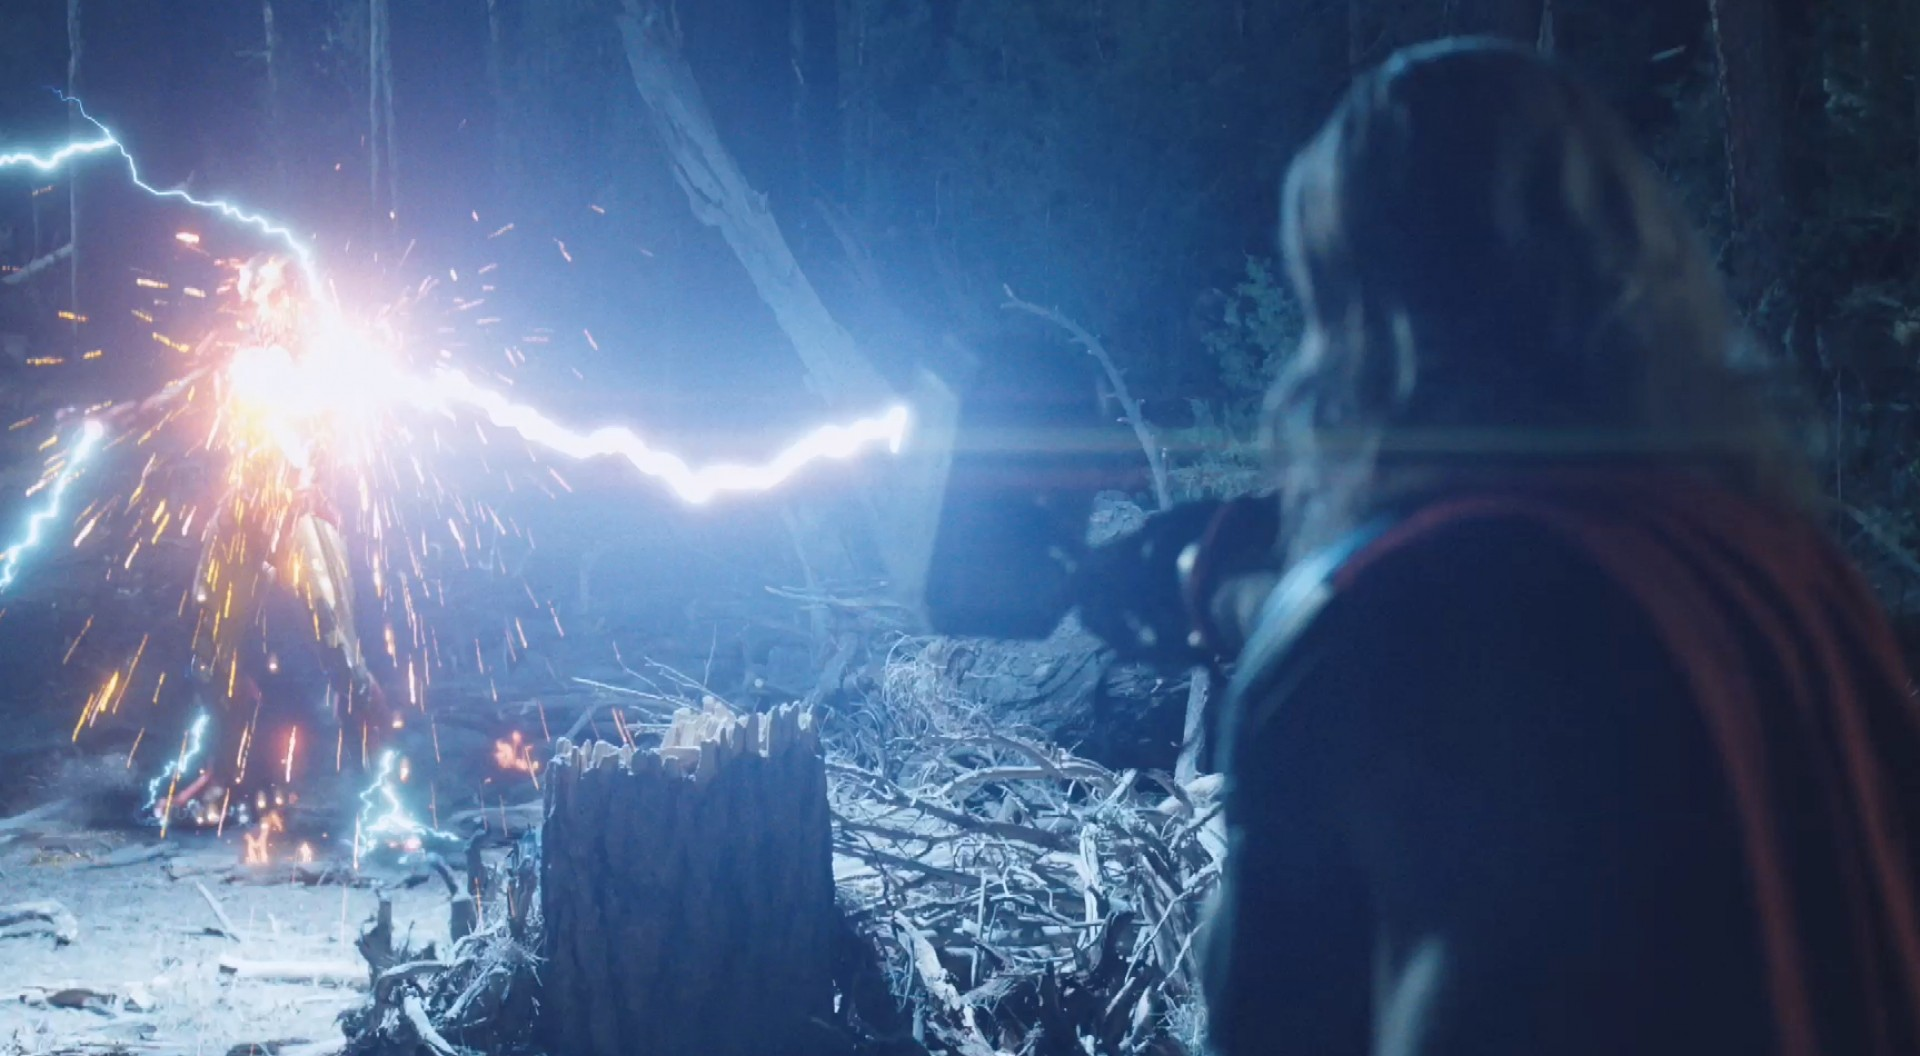 thor-vs-iron-man-in-the-avengers-2012